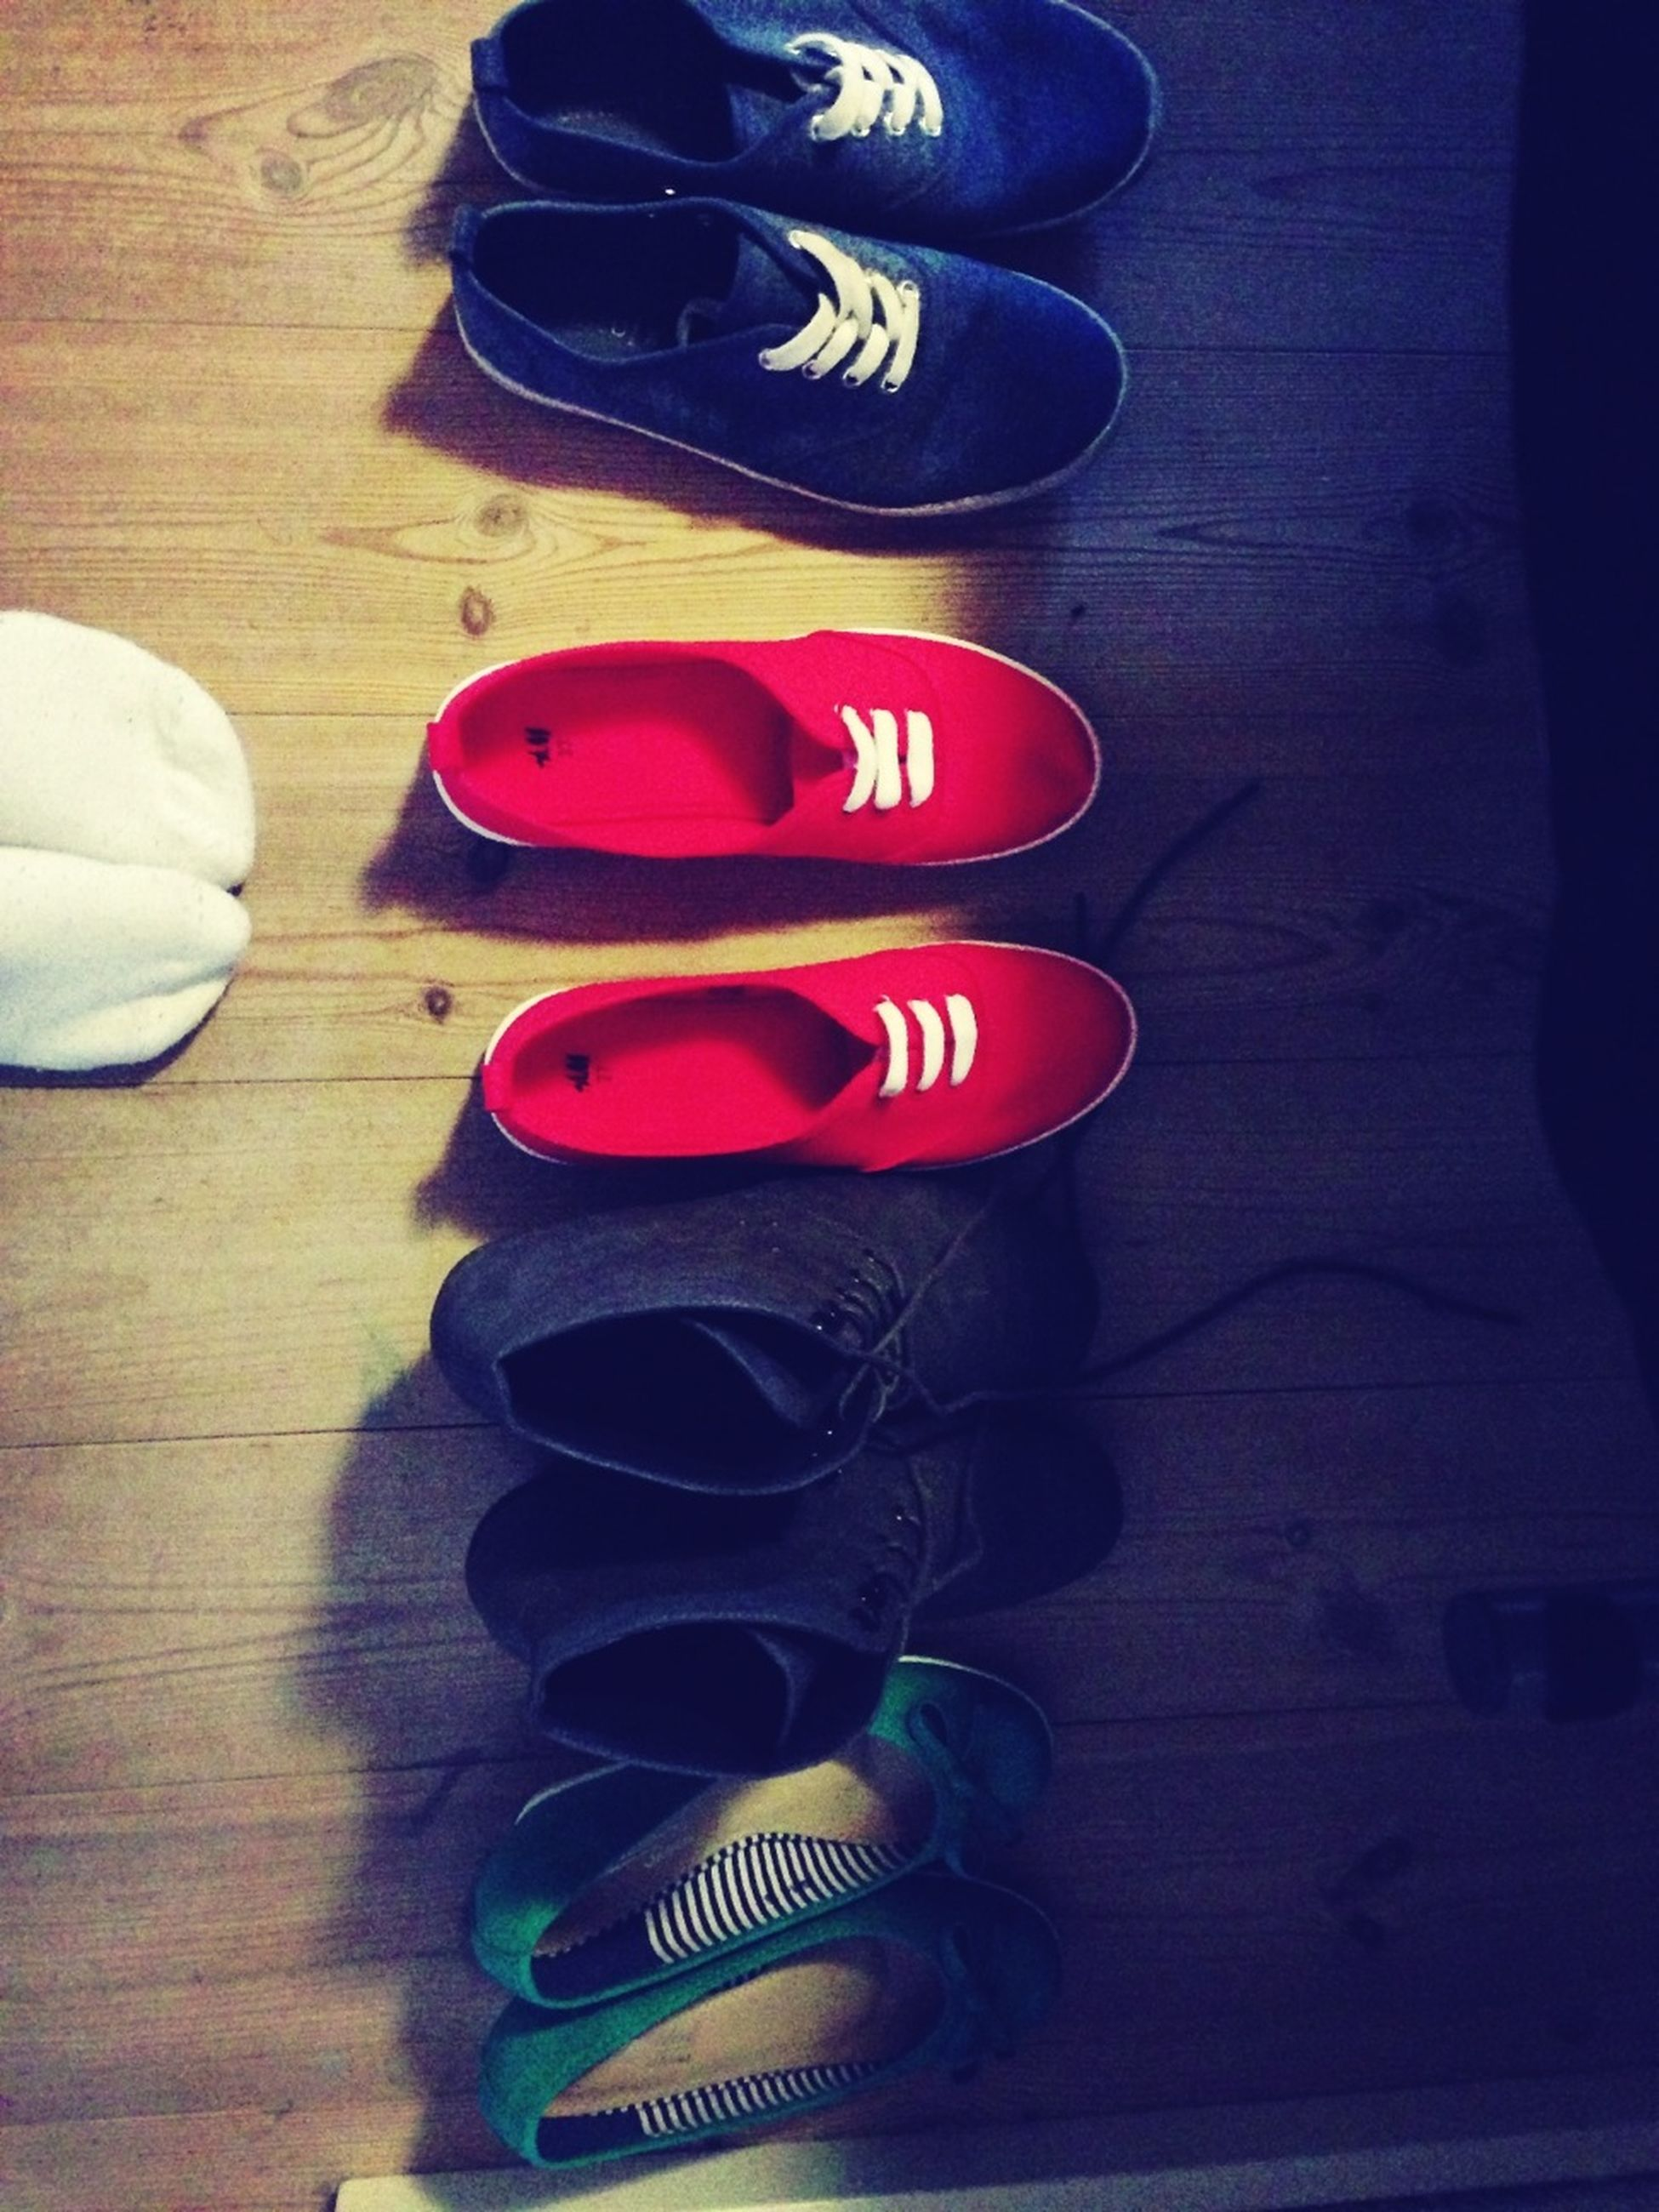 indoors, still life, high angle view, shoe, table, wood - material, footwear, variation, pair, close-up, arrangement, large group of objects, red, flooring, floor, choice, in a row, no people, stack, absence